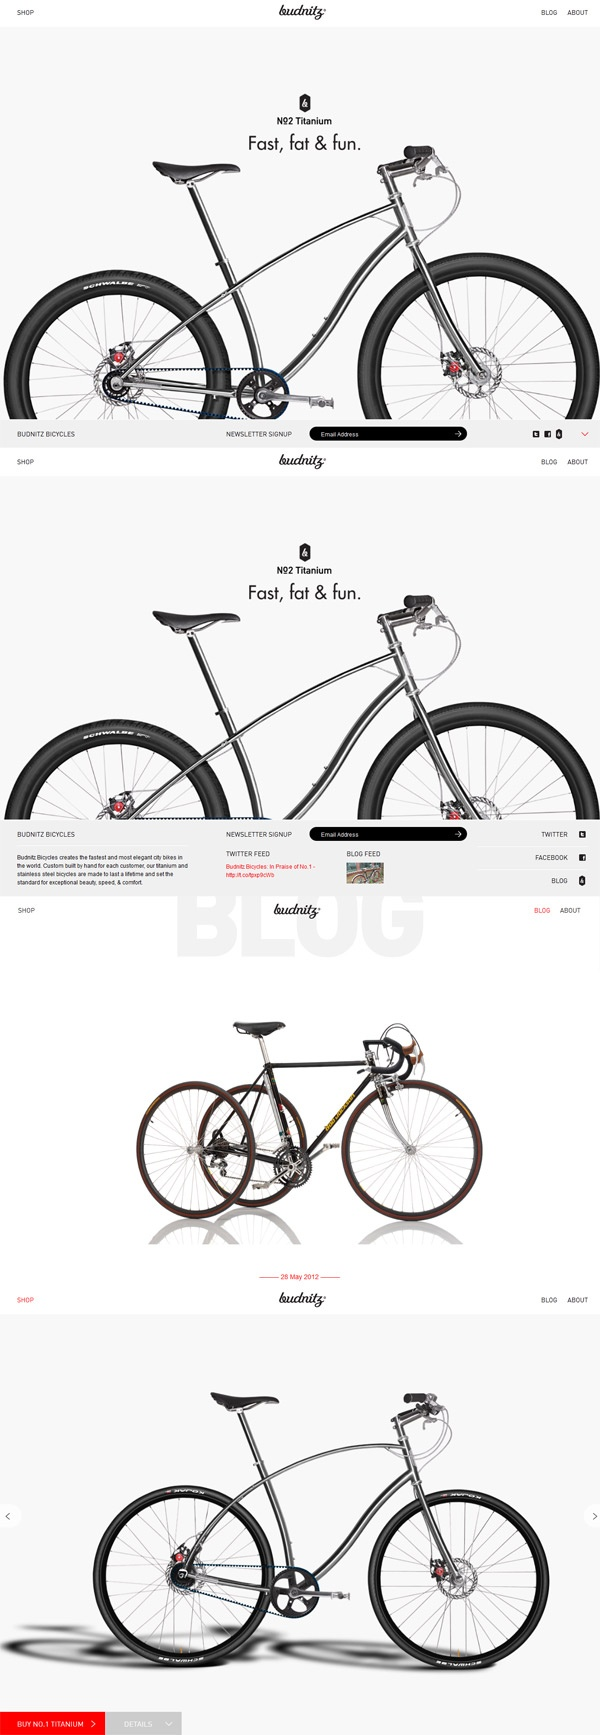 Budnitz Bicycles - Clean Web Design Inspiration